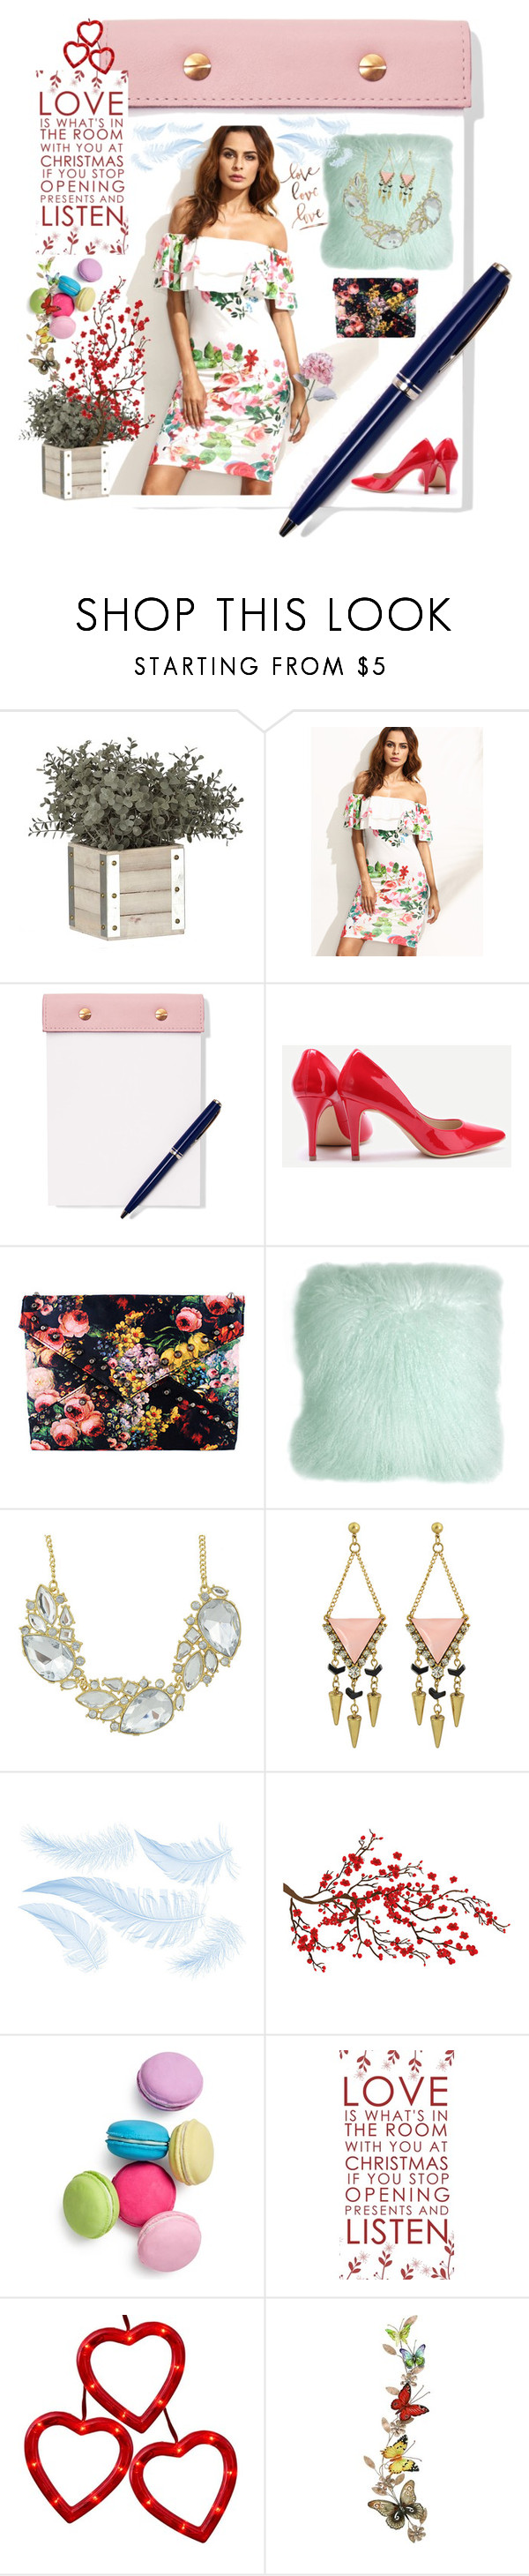 """""""Valentine Day 🙈♥️"""" by donnyprabowo ❤ liked on Polyvore featuring StudioSarah, Pillow Decor, Brewster Home Fashions, Two's Company and Home Decorators Collection"""